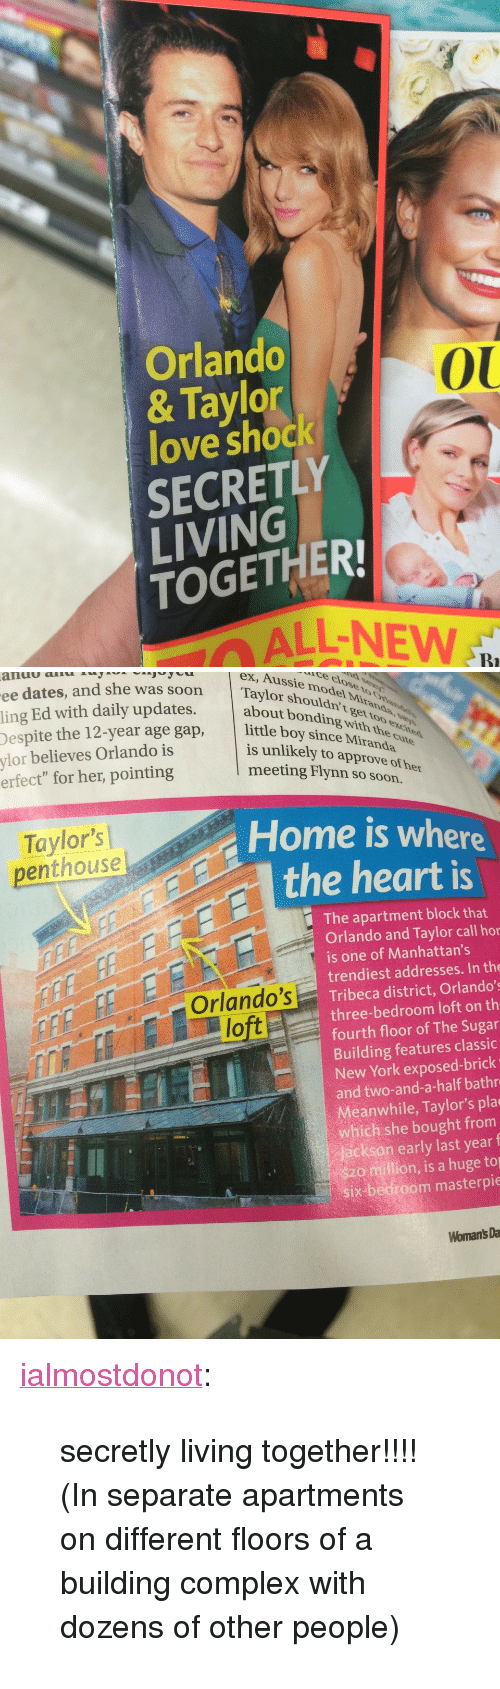 """Complex, Love, and New York: Orlando  & Taylor  love shock  SECRETLY  LIVING  TOGETHER  0U  ALL-NEW  Bi   ex, Aussie model Mira  about bonding with  is unlikely to approve of her  te dlose  ee dates, and she was soon  ling Ed with daily updates.ushouldu  espite the 12-year age gap, little boy sinnt  Despite t  ylor believes Orlando is  erfect"""" for her, pointing  meeting Flynn so soon.  Taylor's  penthouse  Home is where  the heart is  The apartment block that  Orlando and Taylor call hor  is one of Manhattan's  trendiest addresses. In the  Orlando's Tribeca district, Orlando's  three-bedroom loft on th  fourth floor of The Sugar  Building features classic  New York exposed-brick  and two-and-a-half bathr  Meanwhile, Taylor's pla  which she bought from  jackson early last year f  $20 million, is a huge to  six-bedroom masterpie  lo  Womant's Da <p><a class=""""tumblr_blog"""" href=""""http://ialmostdonot.tumblr.com/post/107255852222/secretly-living-together-in-separate"""" target=""""_blank"""">ialmostdonot</a>:</p> <blockquote> <p>secretly living together!!!! (In separate apartments on different floors of a building complex with dozens of other people)</p> </blockquote>"""